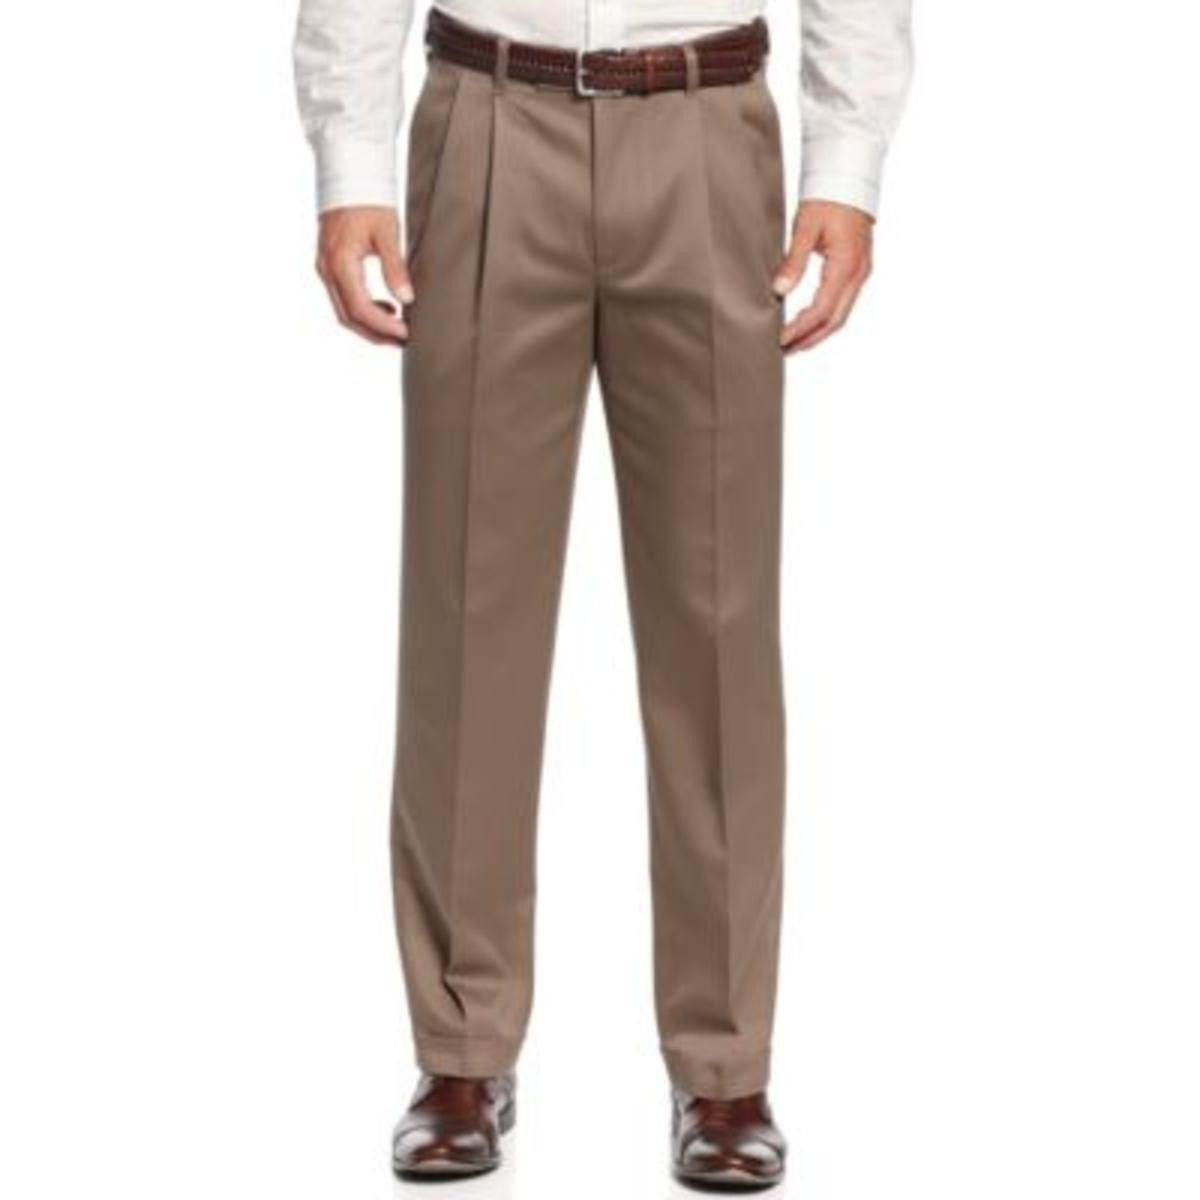 Perry Ellis Mens Non-Iron Tailored Fit Chino Pants